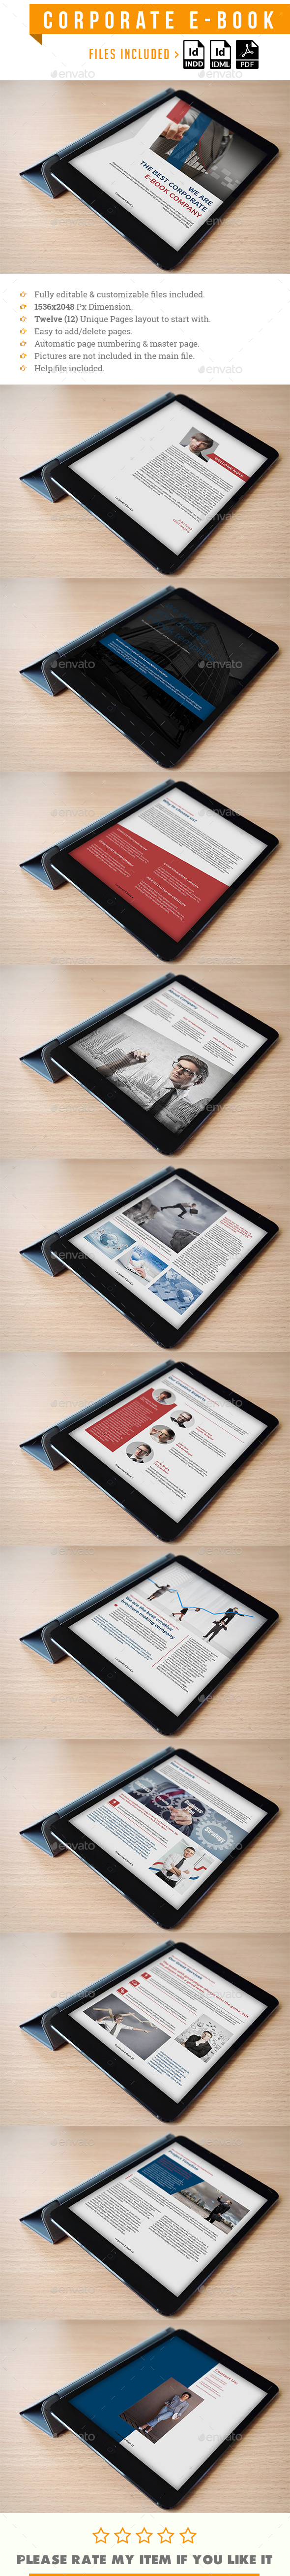 Corporate E-Book Template - Digital Books ePublishing